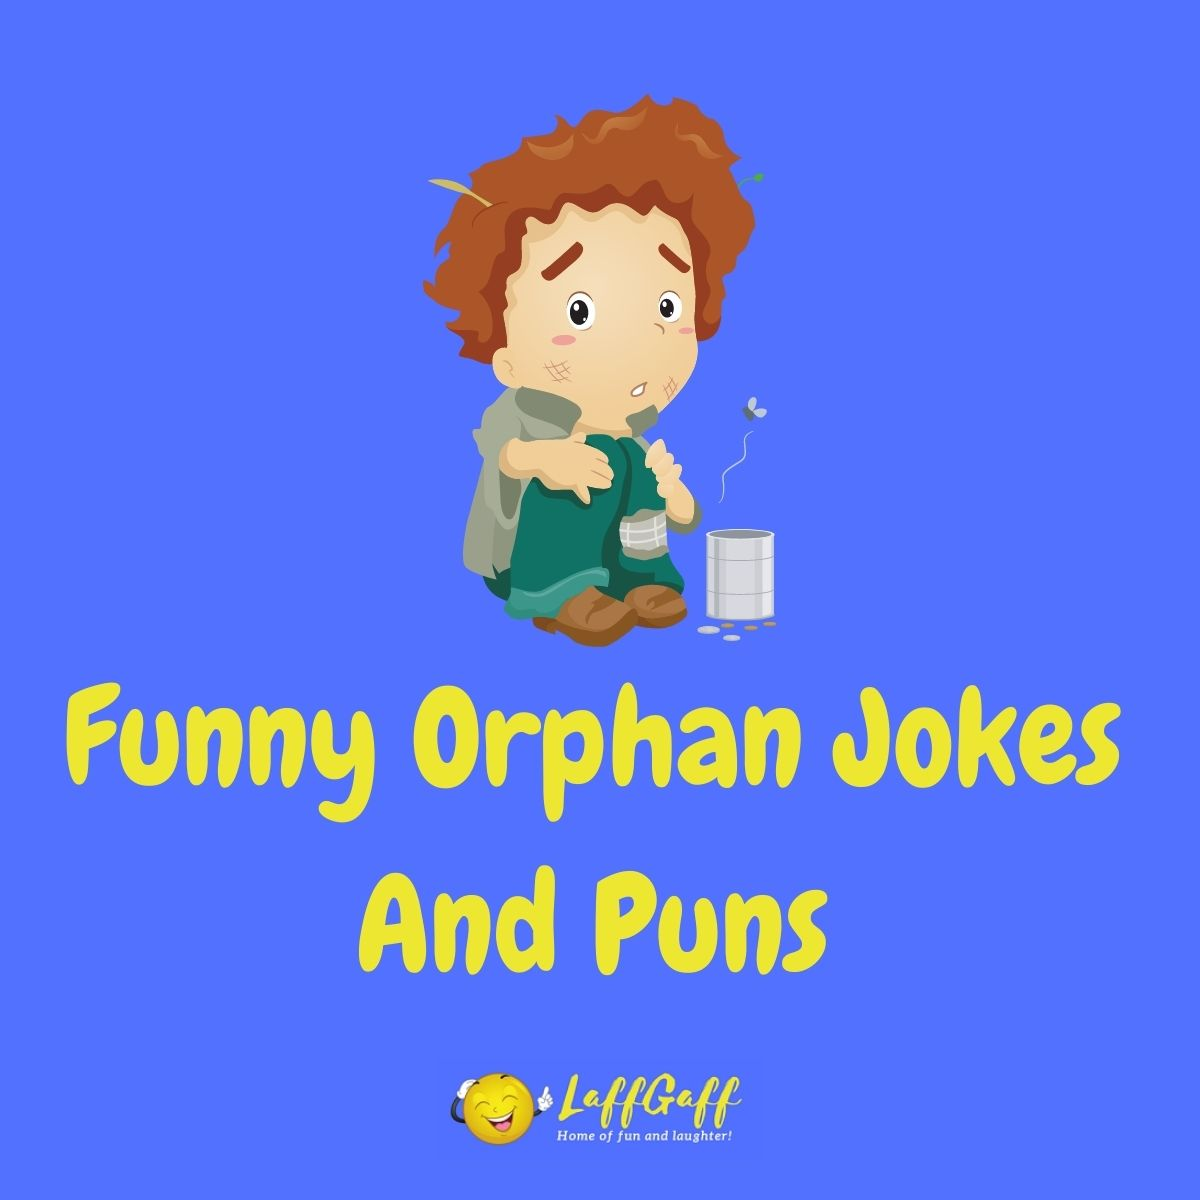 Featured image for a page of funny orphan jokes and puns.